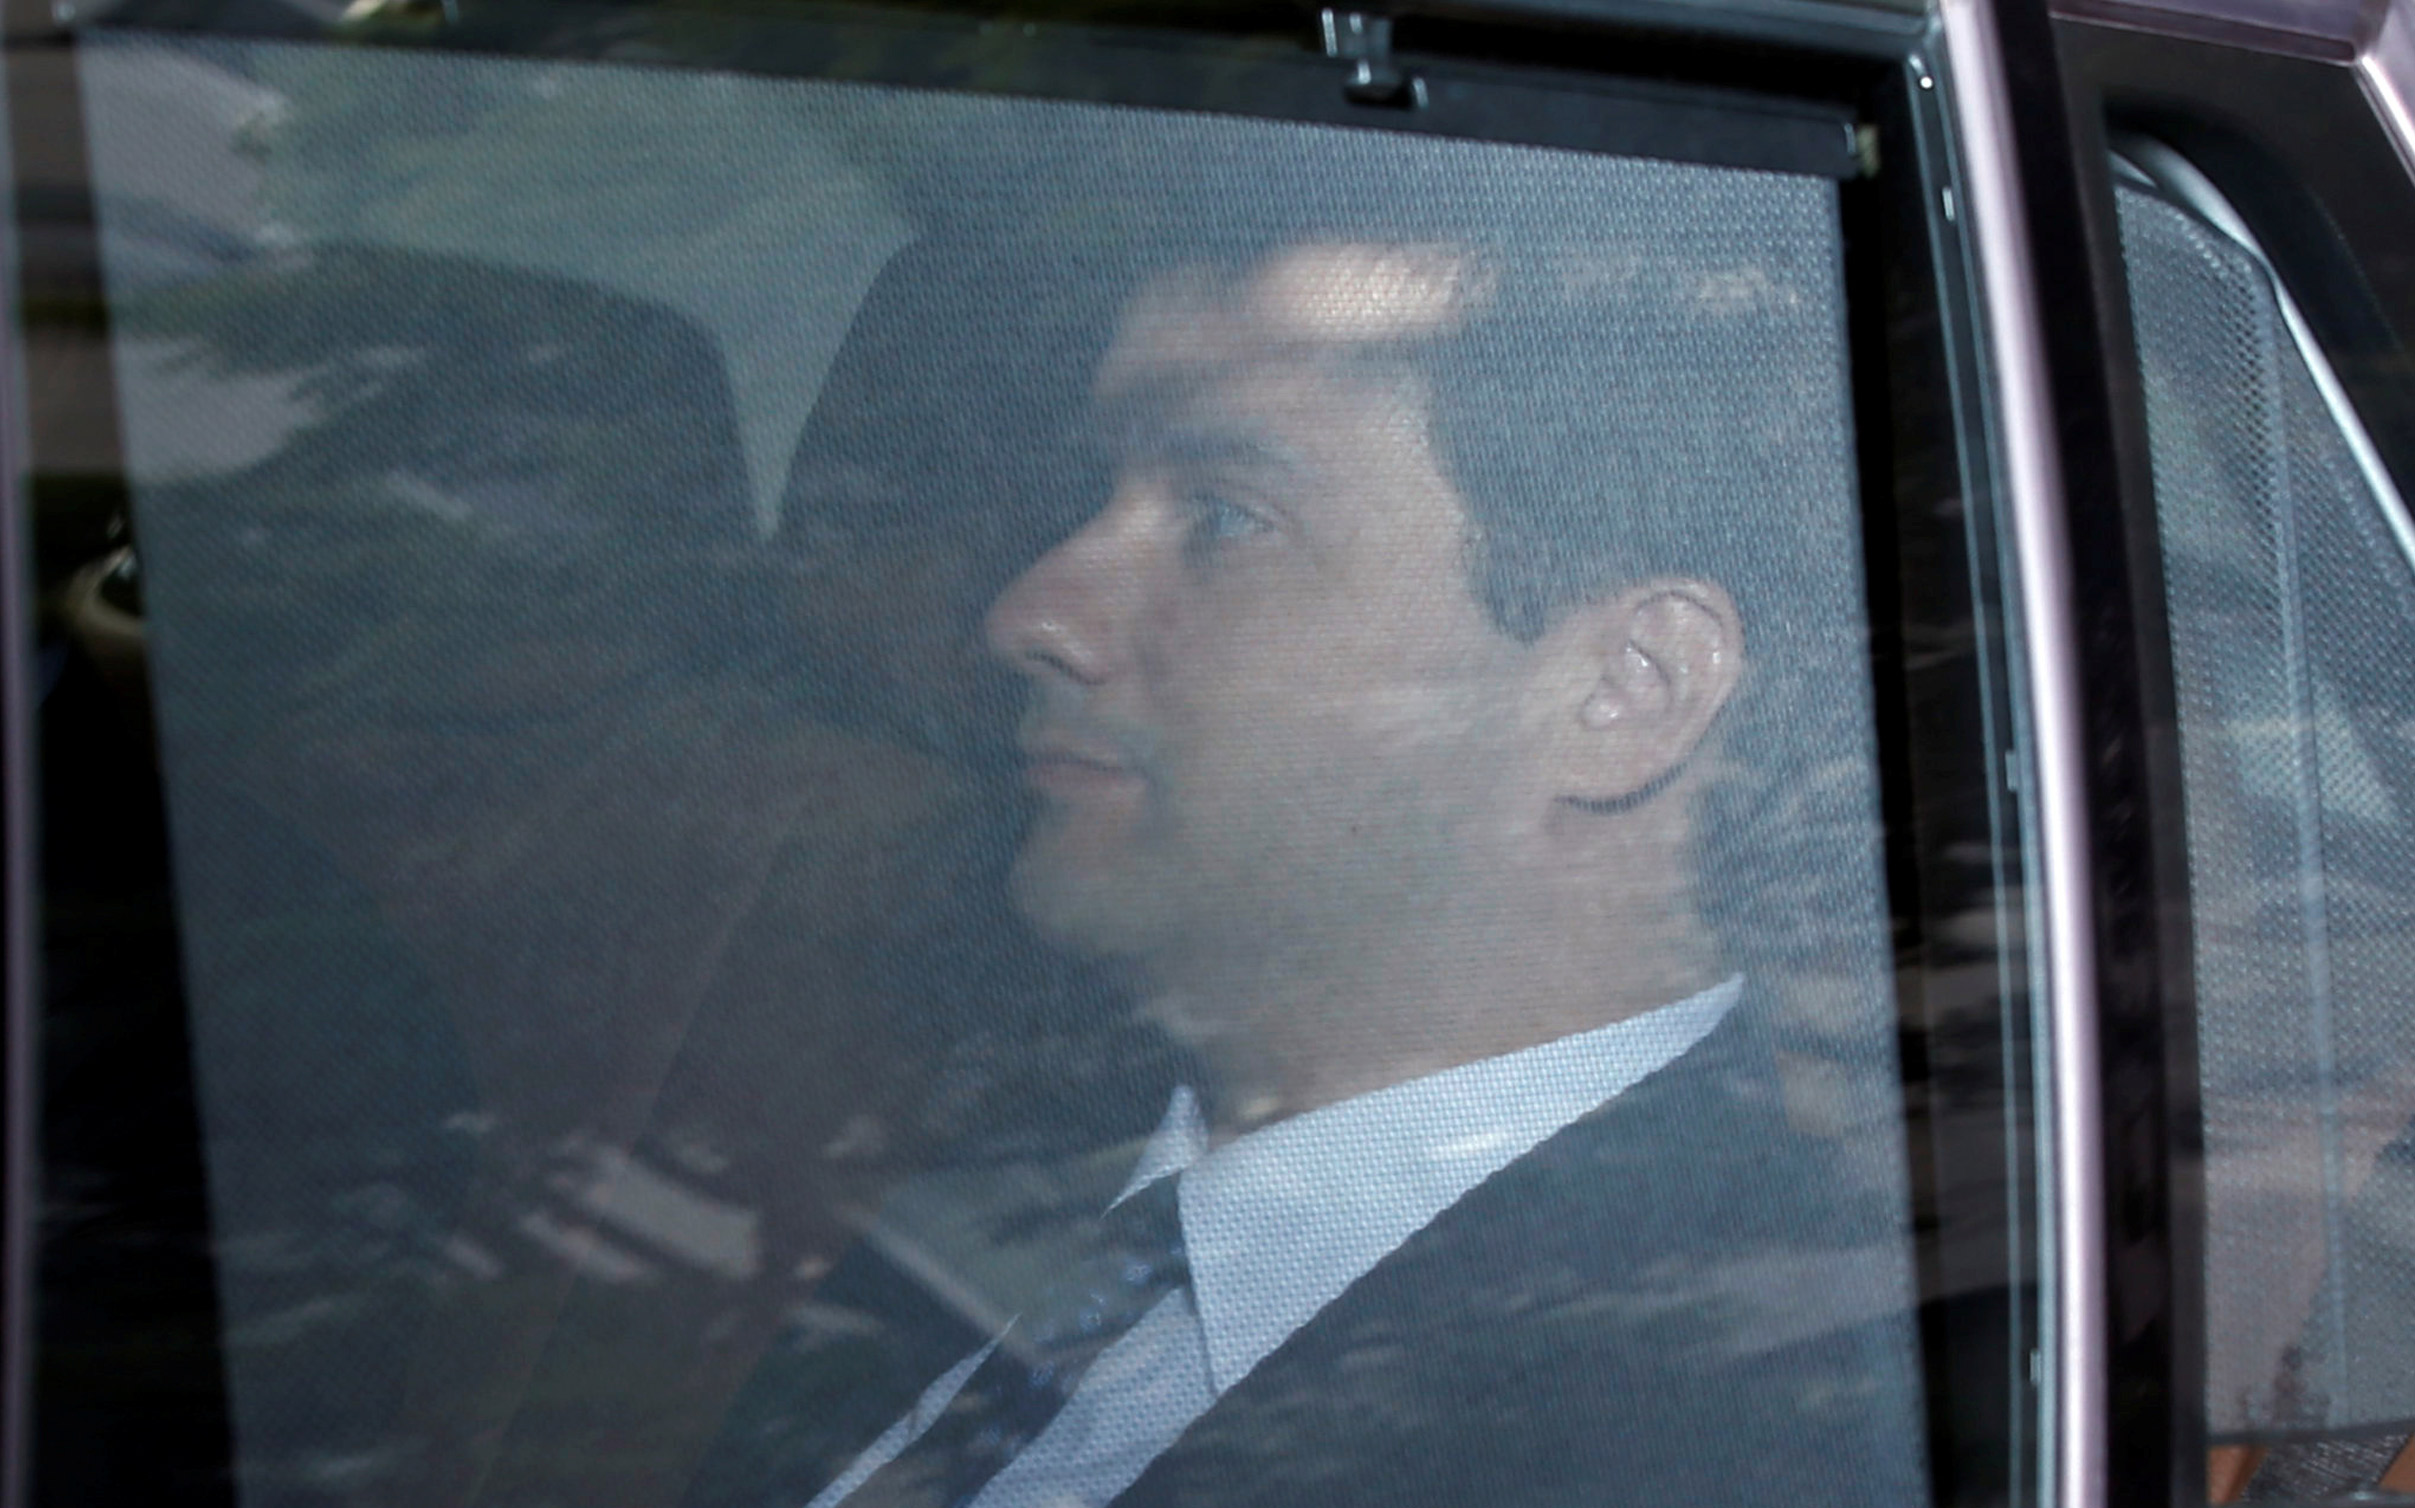 Former CEO of failed bitcoin exchange Mt. Gox pleads not guilty to embezzlement